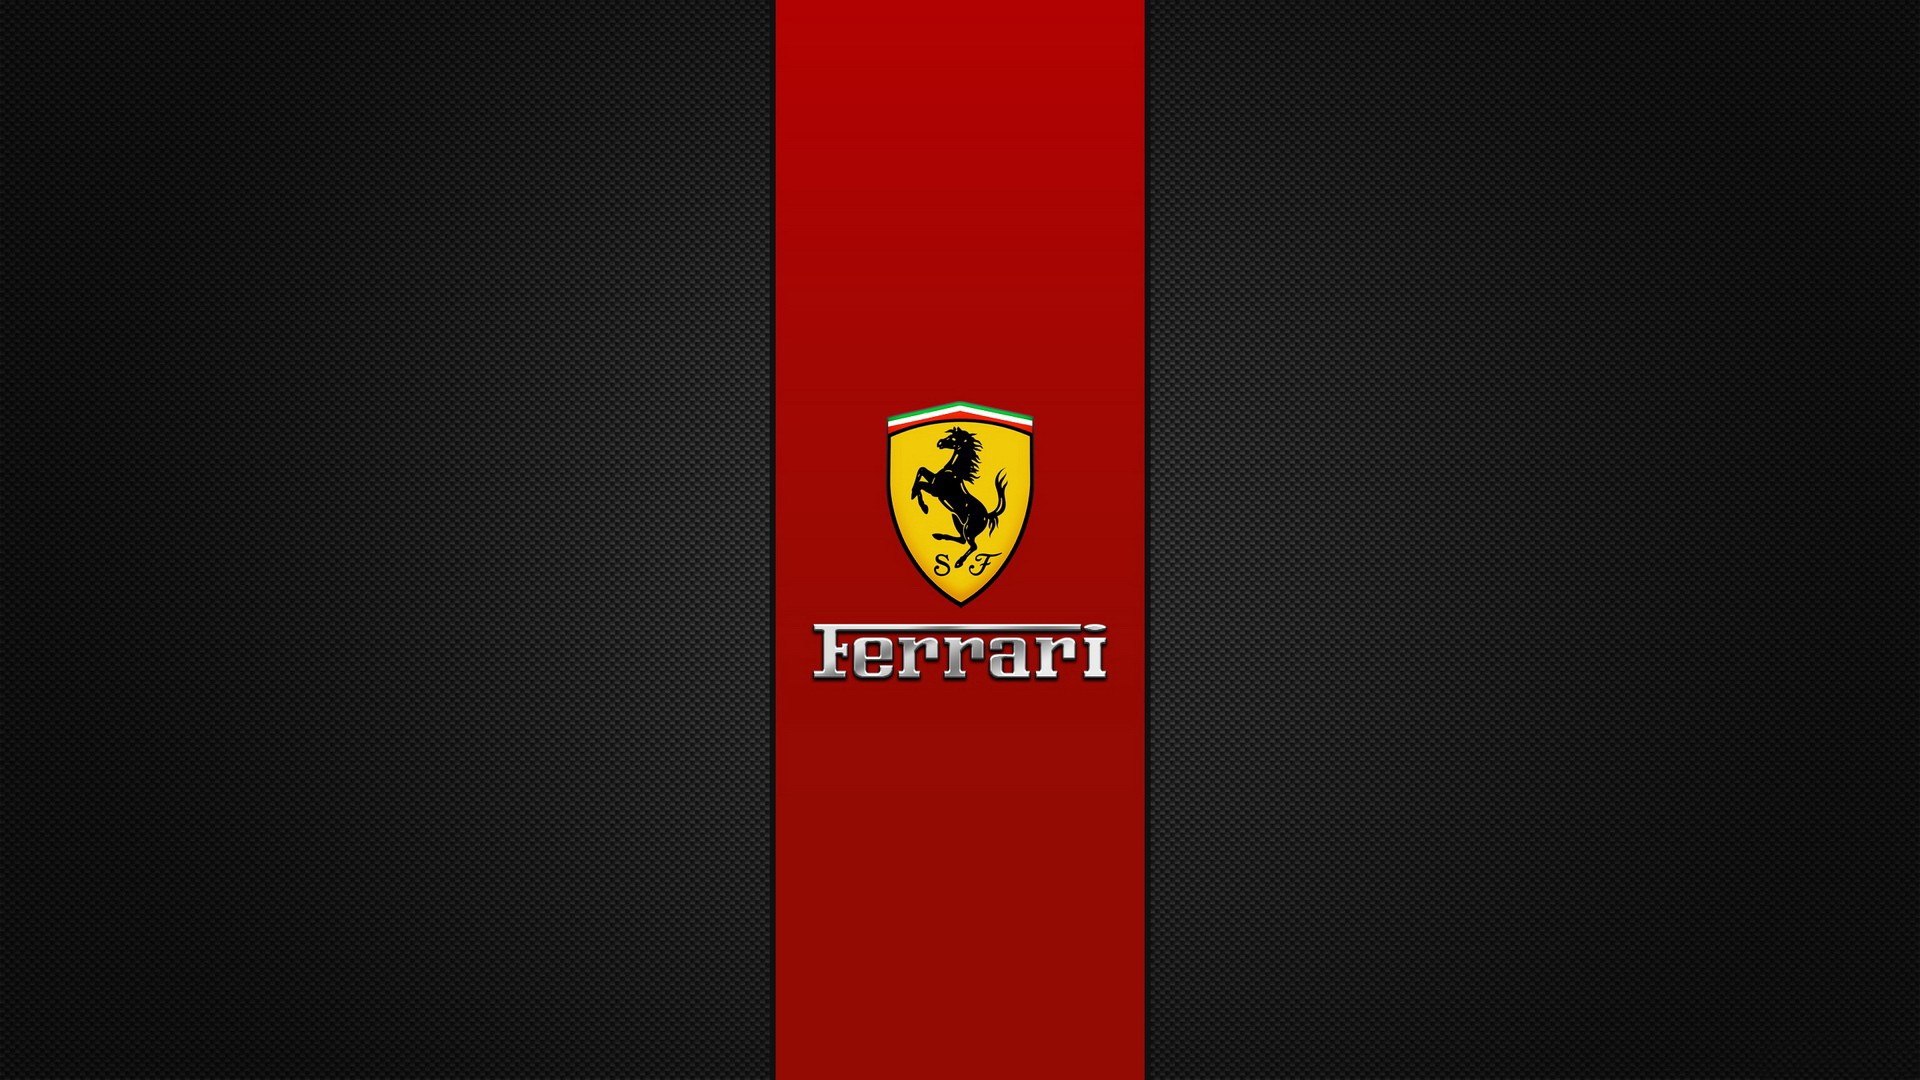 Ferrari Brand Logo  High Definition Wallpapers  Hd